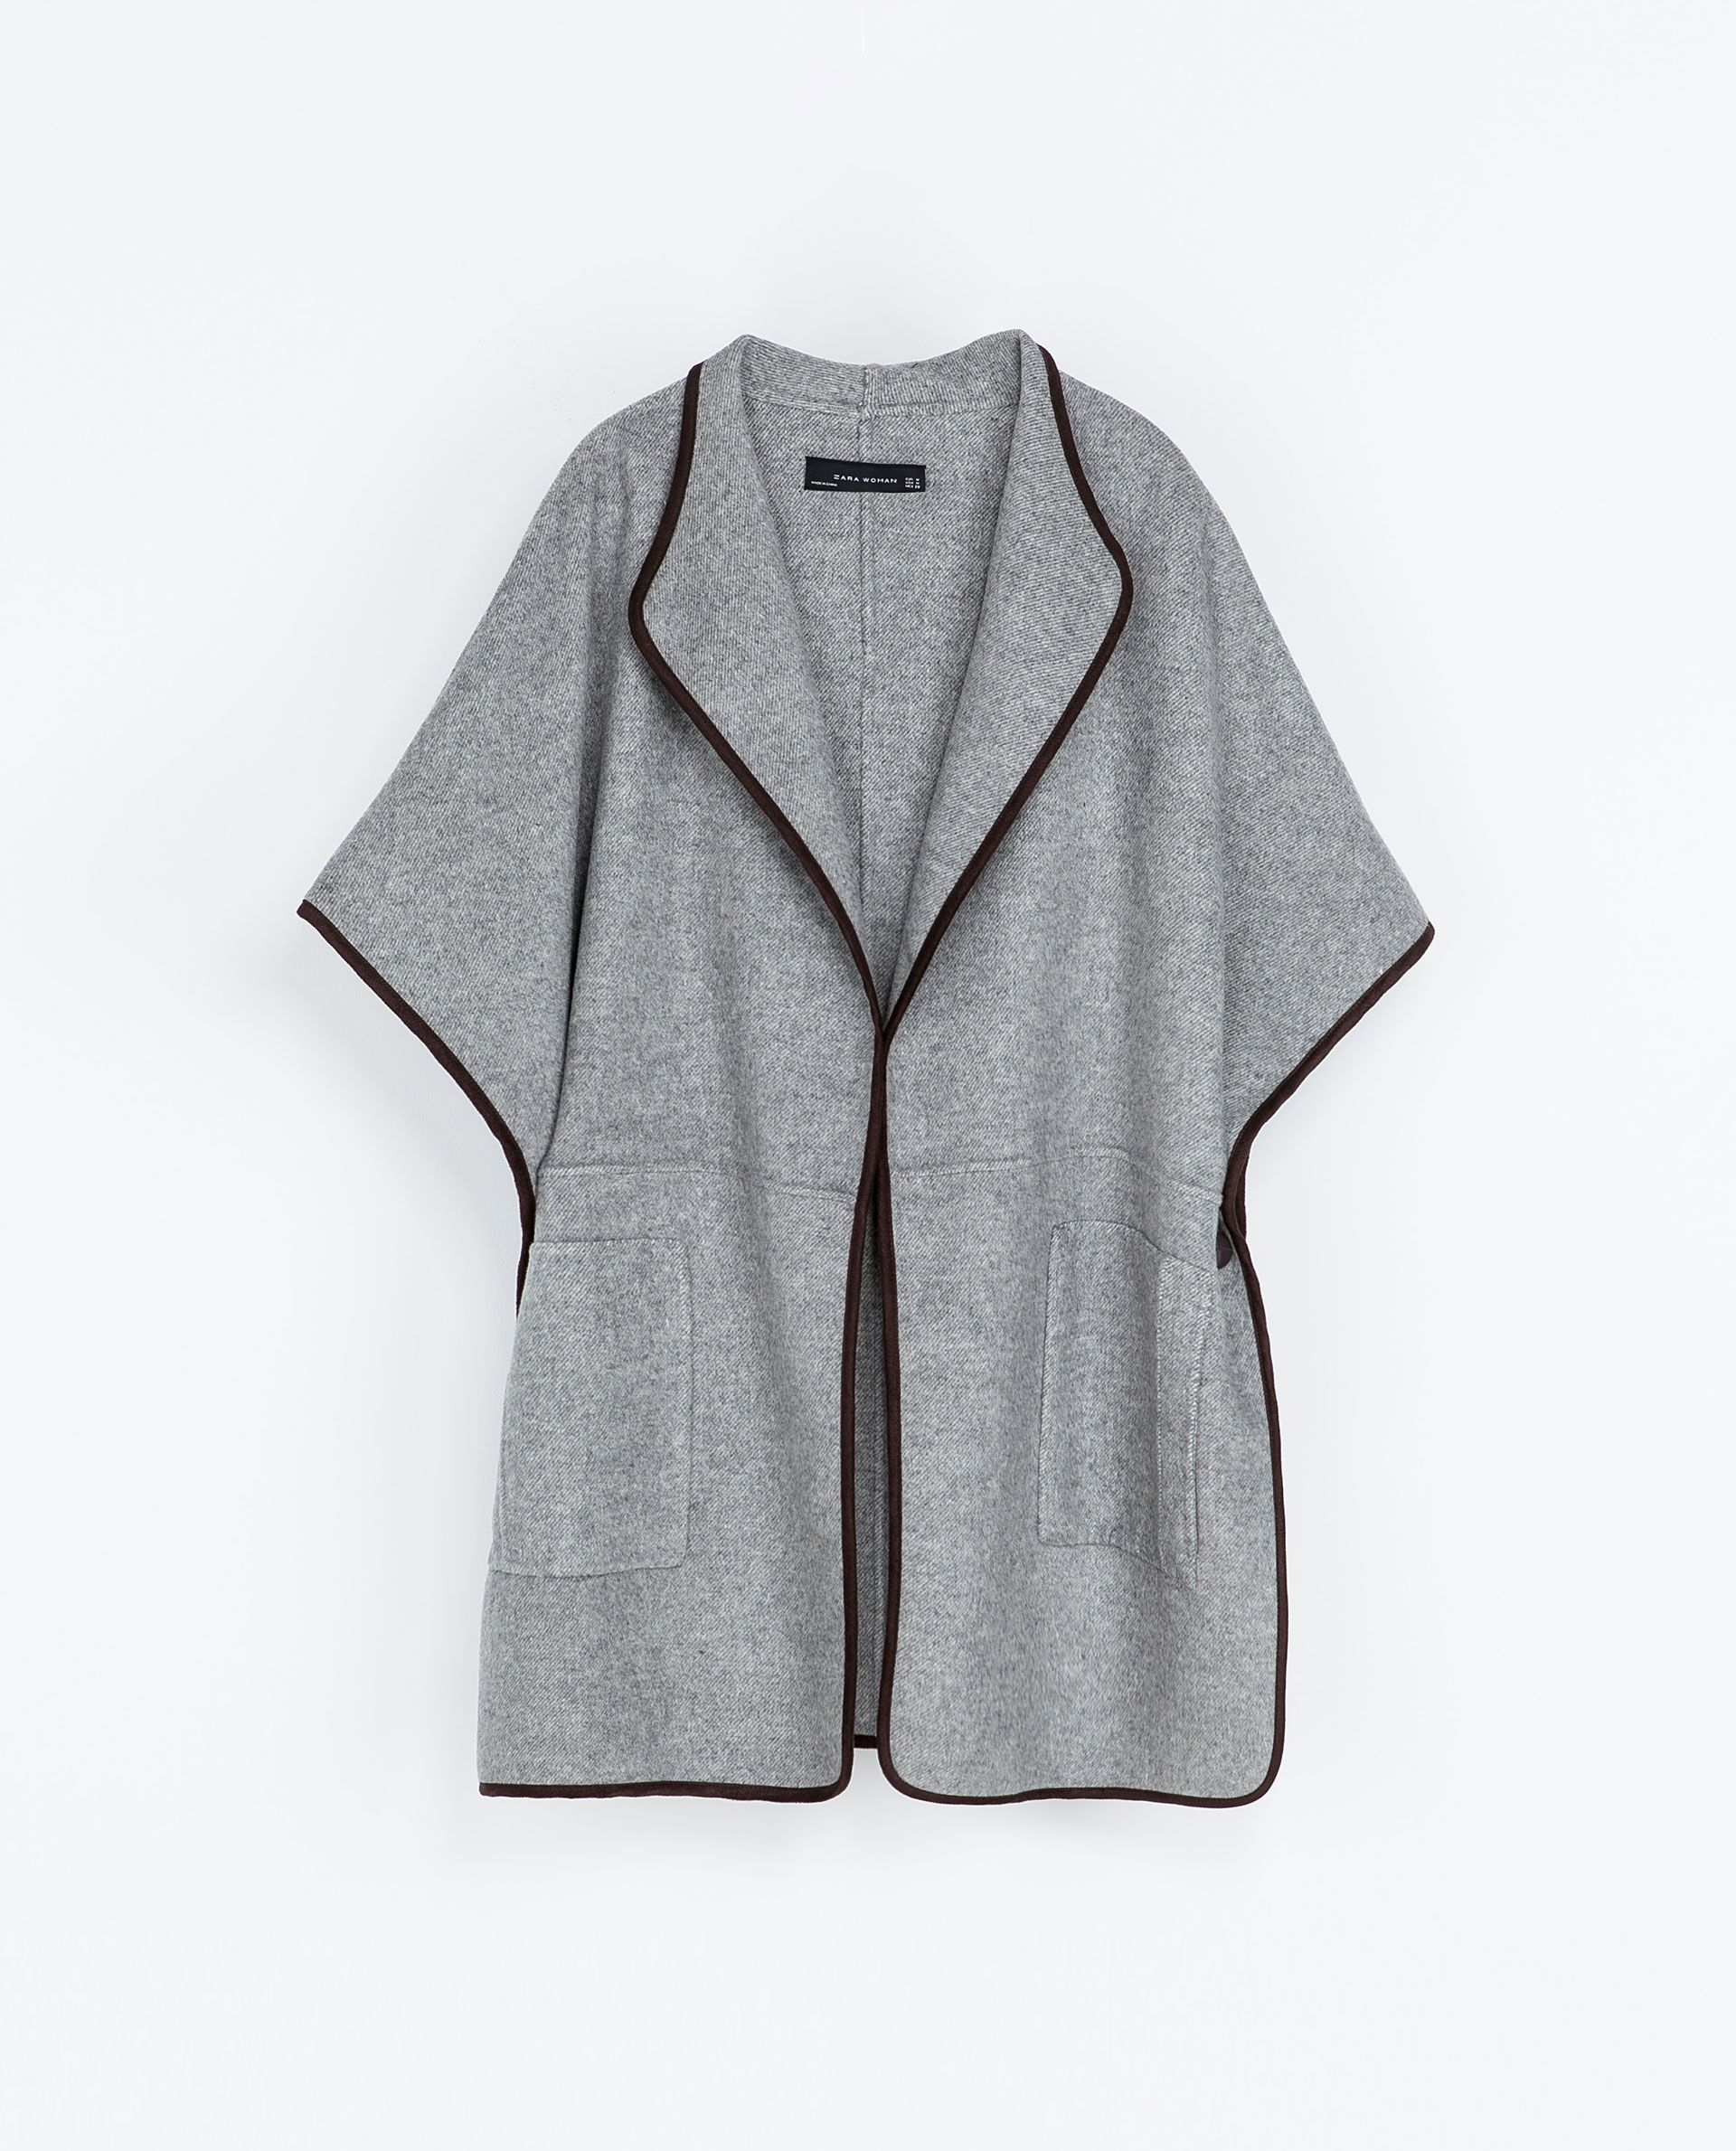 ZARA - WOMAN - HAND-MADE WOOL CAPE | Style | Pinterest | Wool cape ...